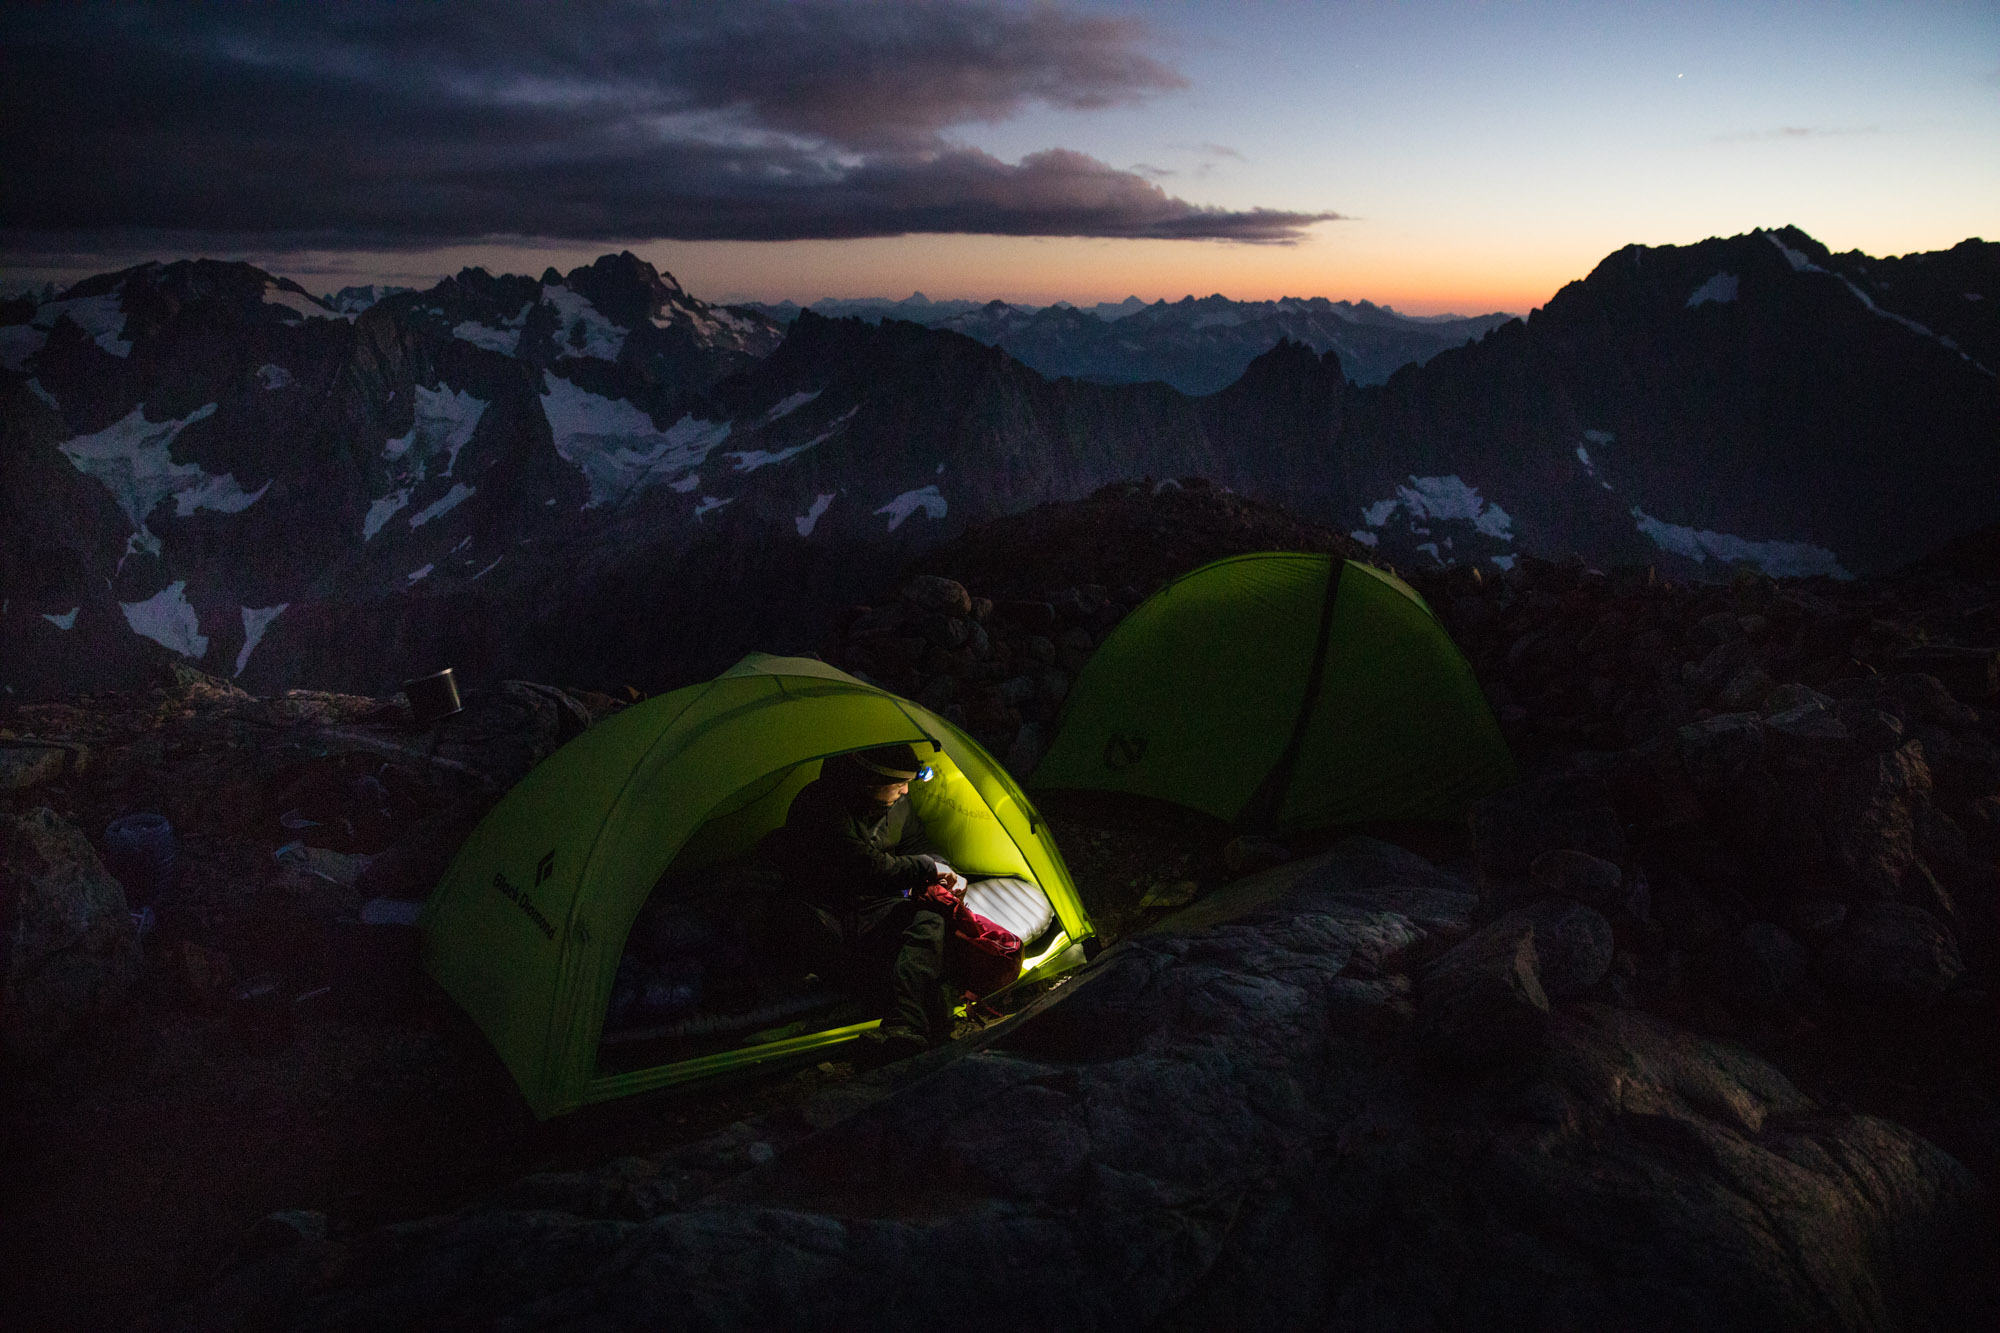 tent-headlamp-hike-fall-backpack-active-lifestyle-photographer